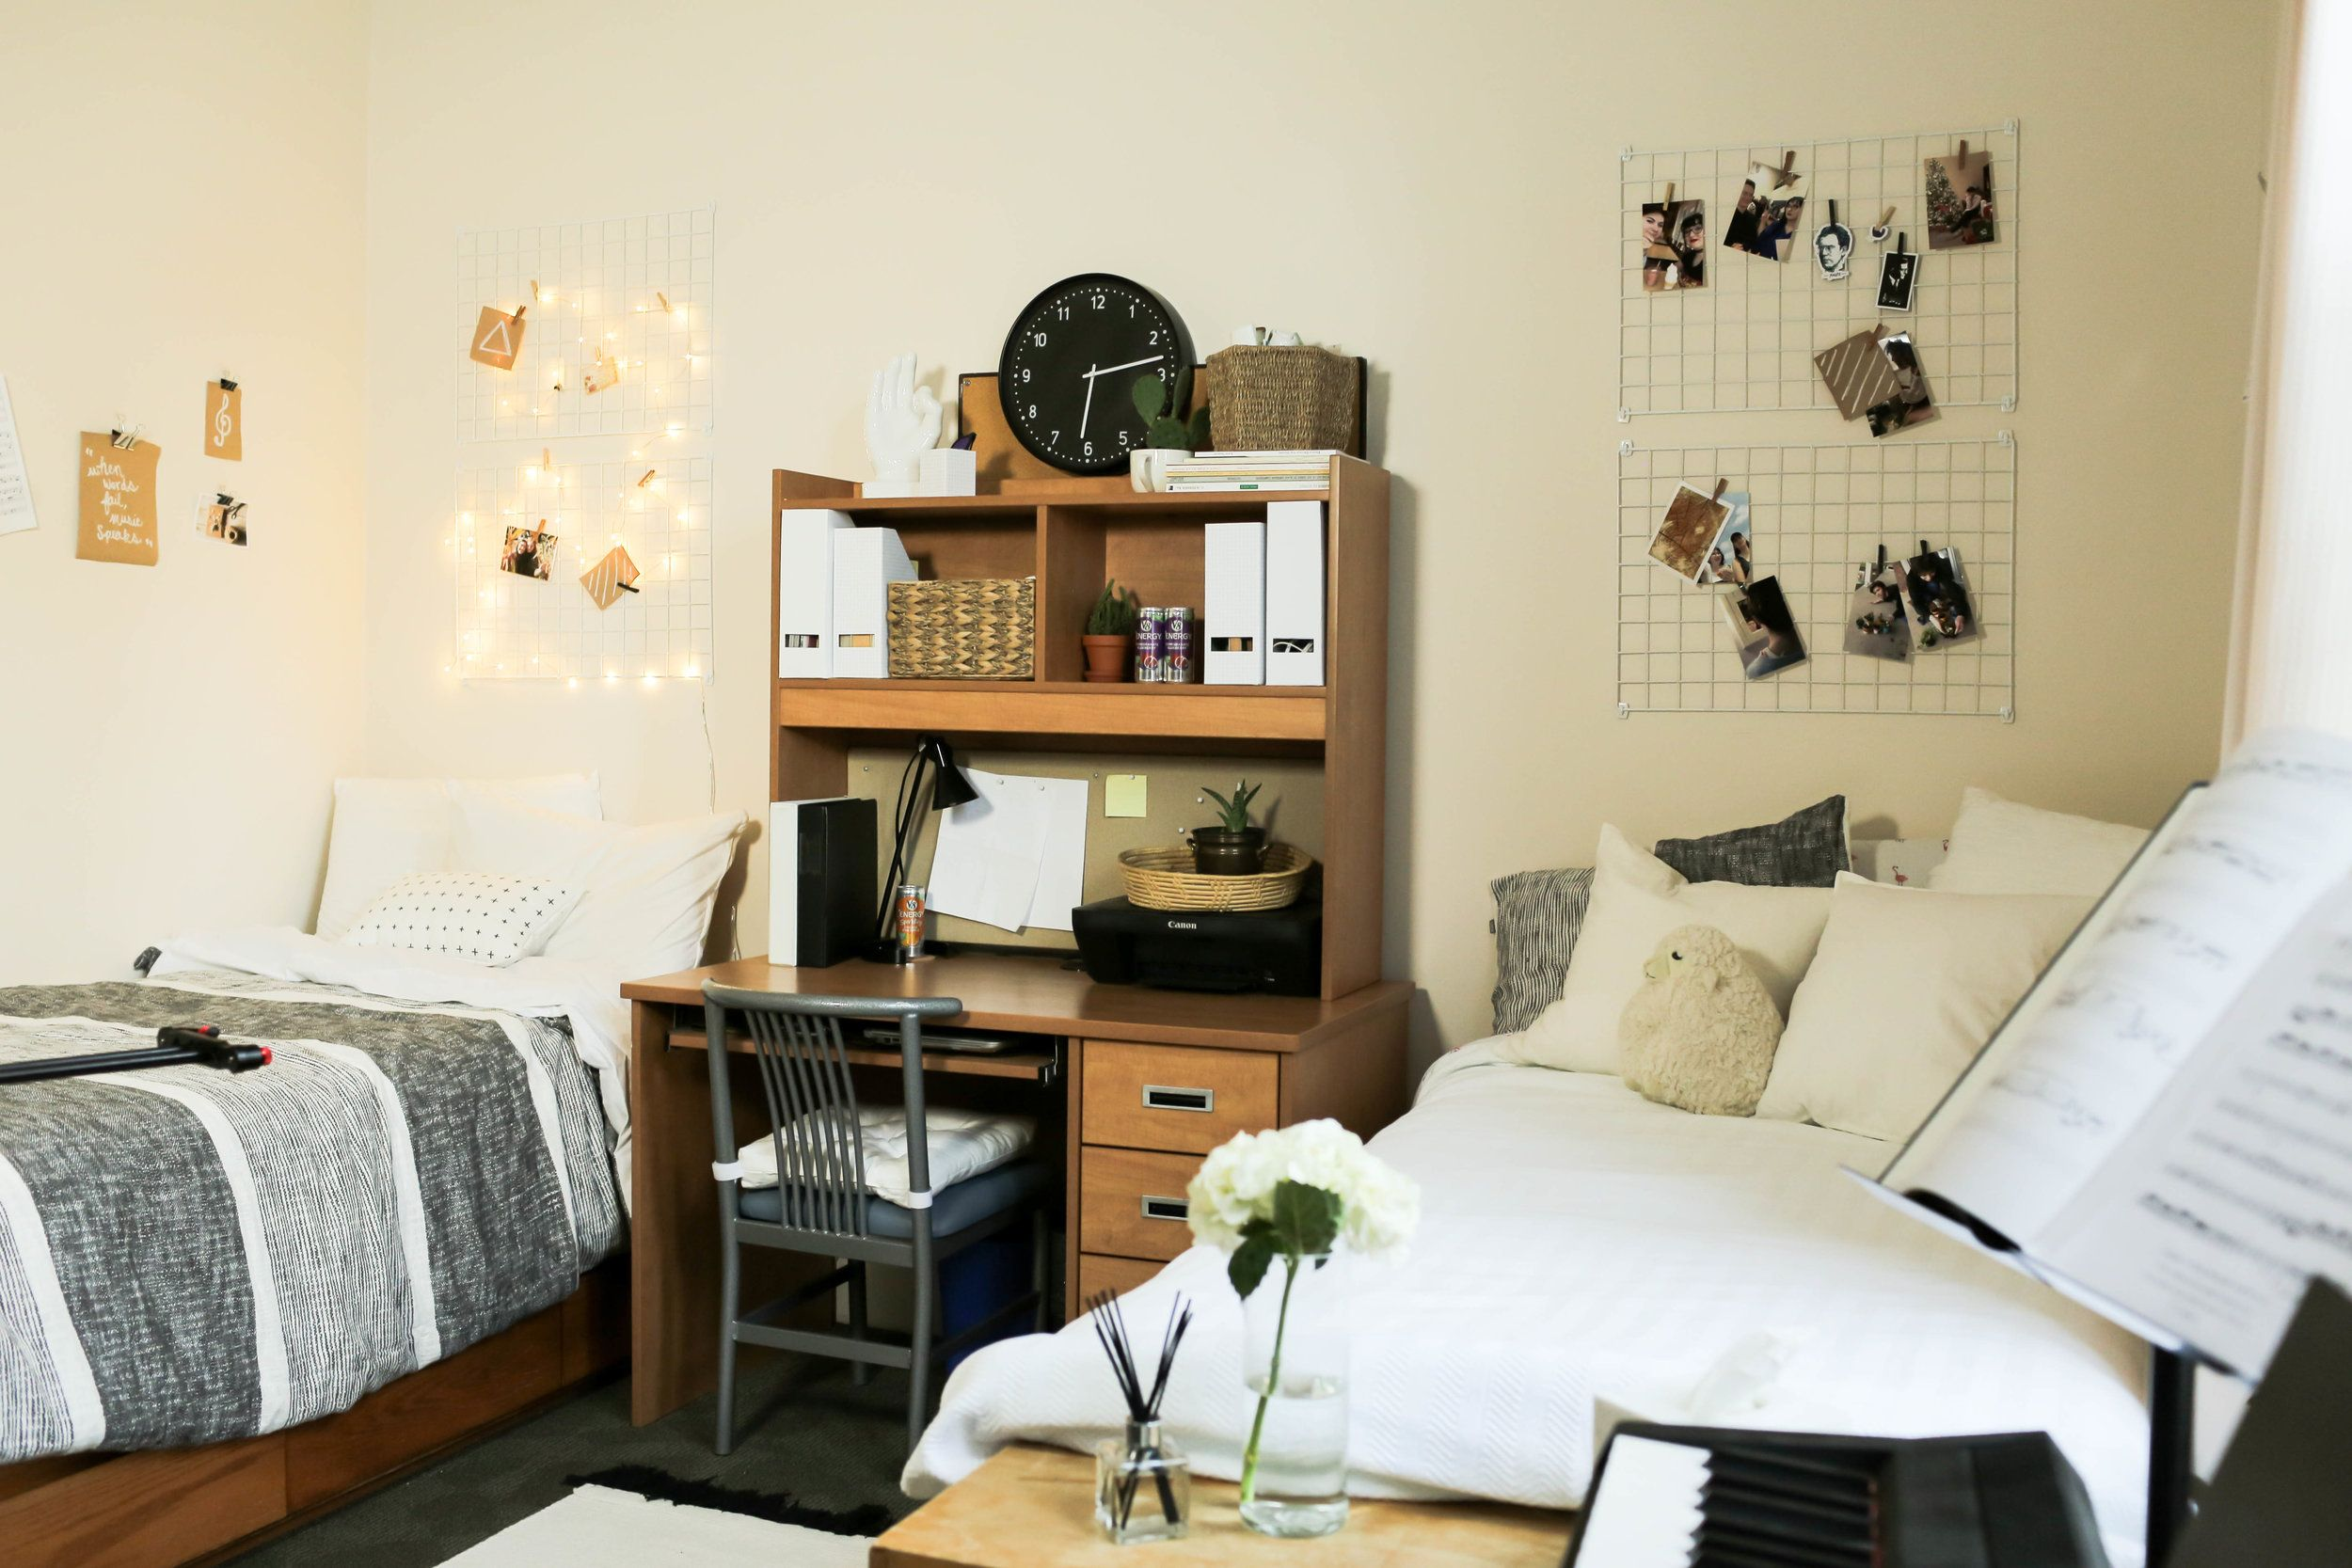 16 Best Dorm Room Transformations of all Time – Most Amazing